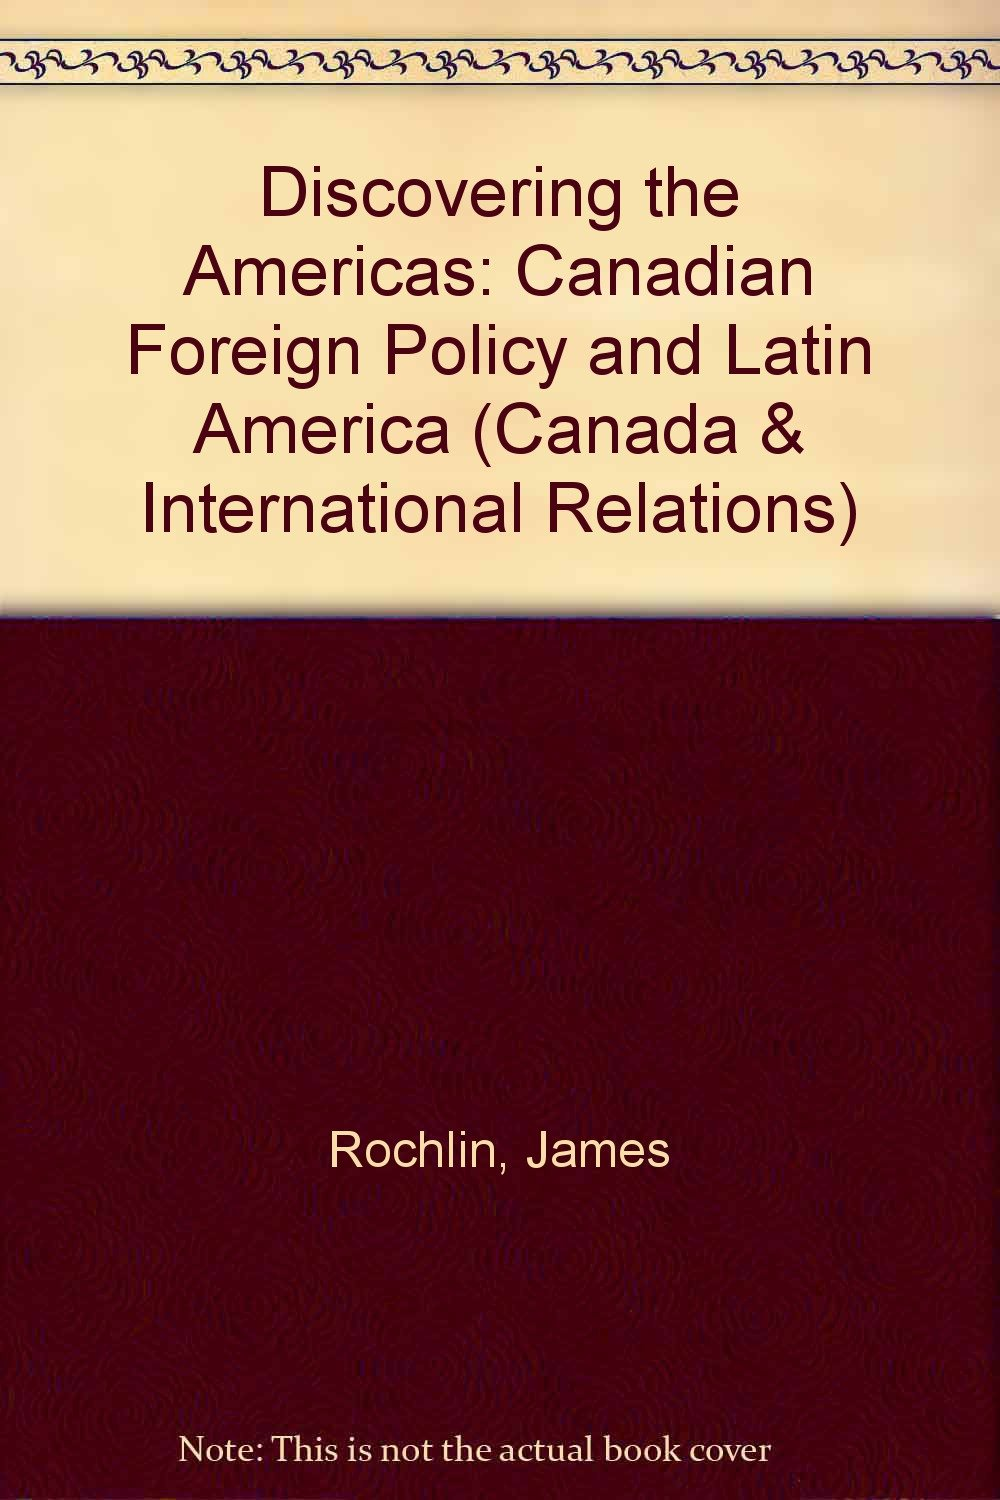 Discovering the Americas: The Evolution of Canadian Foreign Policy Towards Latin America (Canada & International Relations) free download